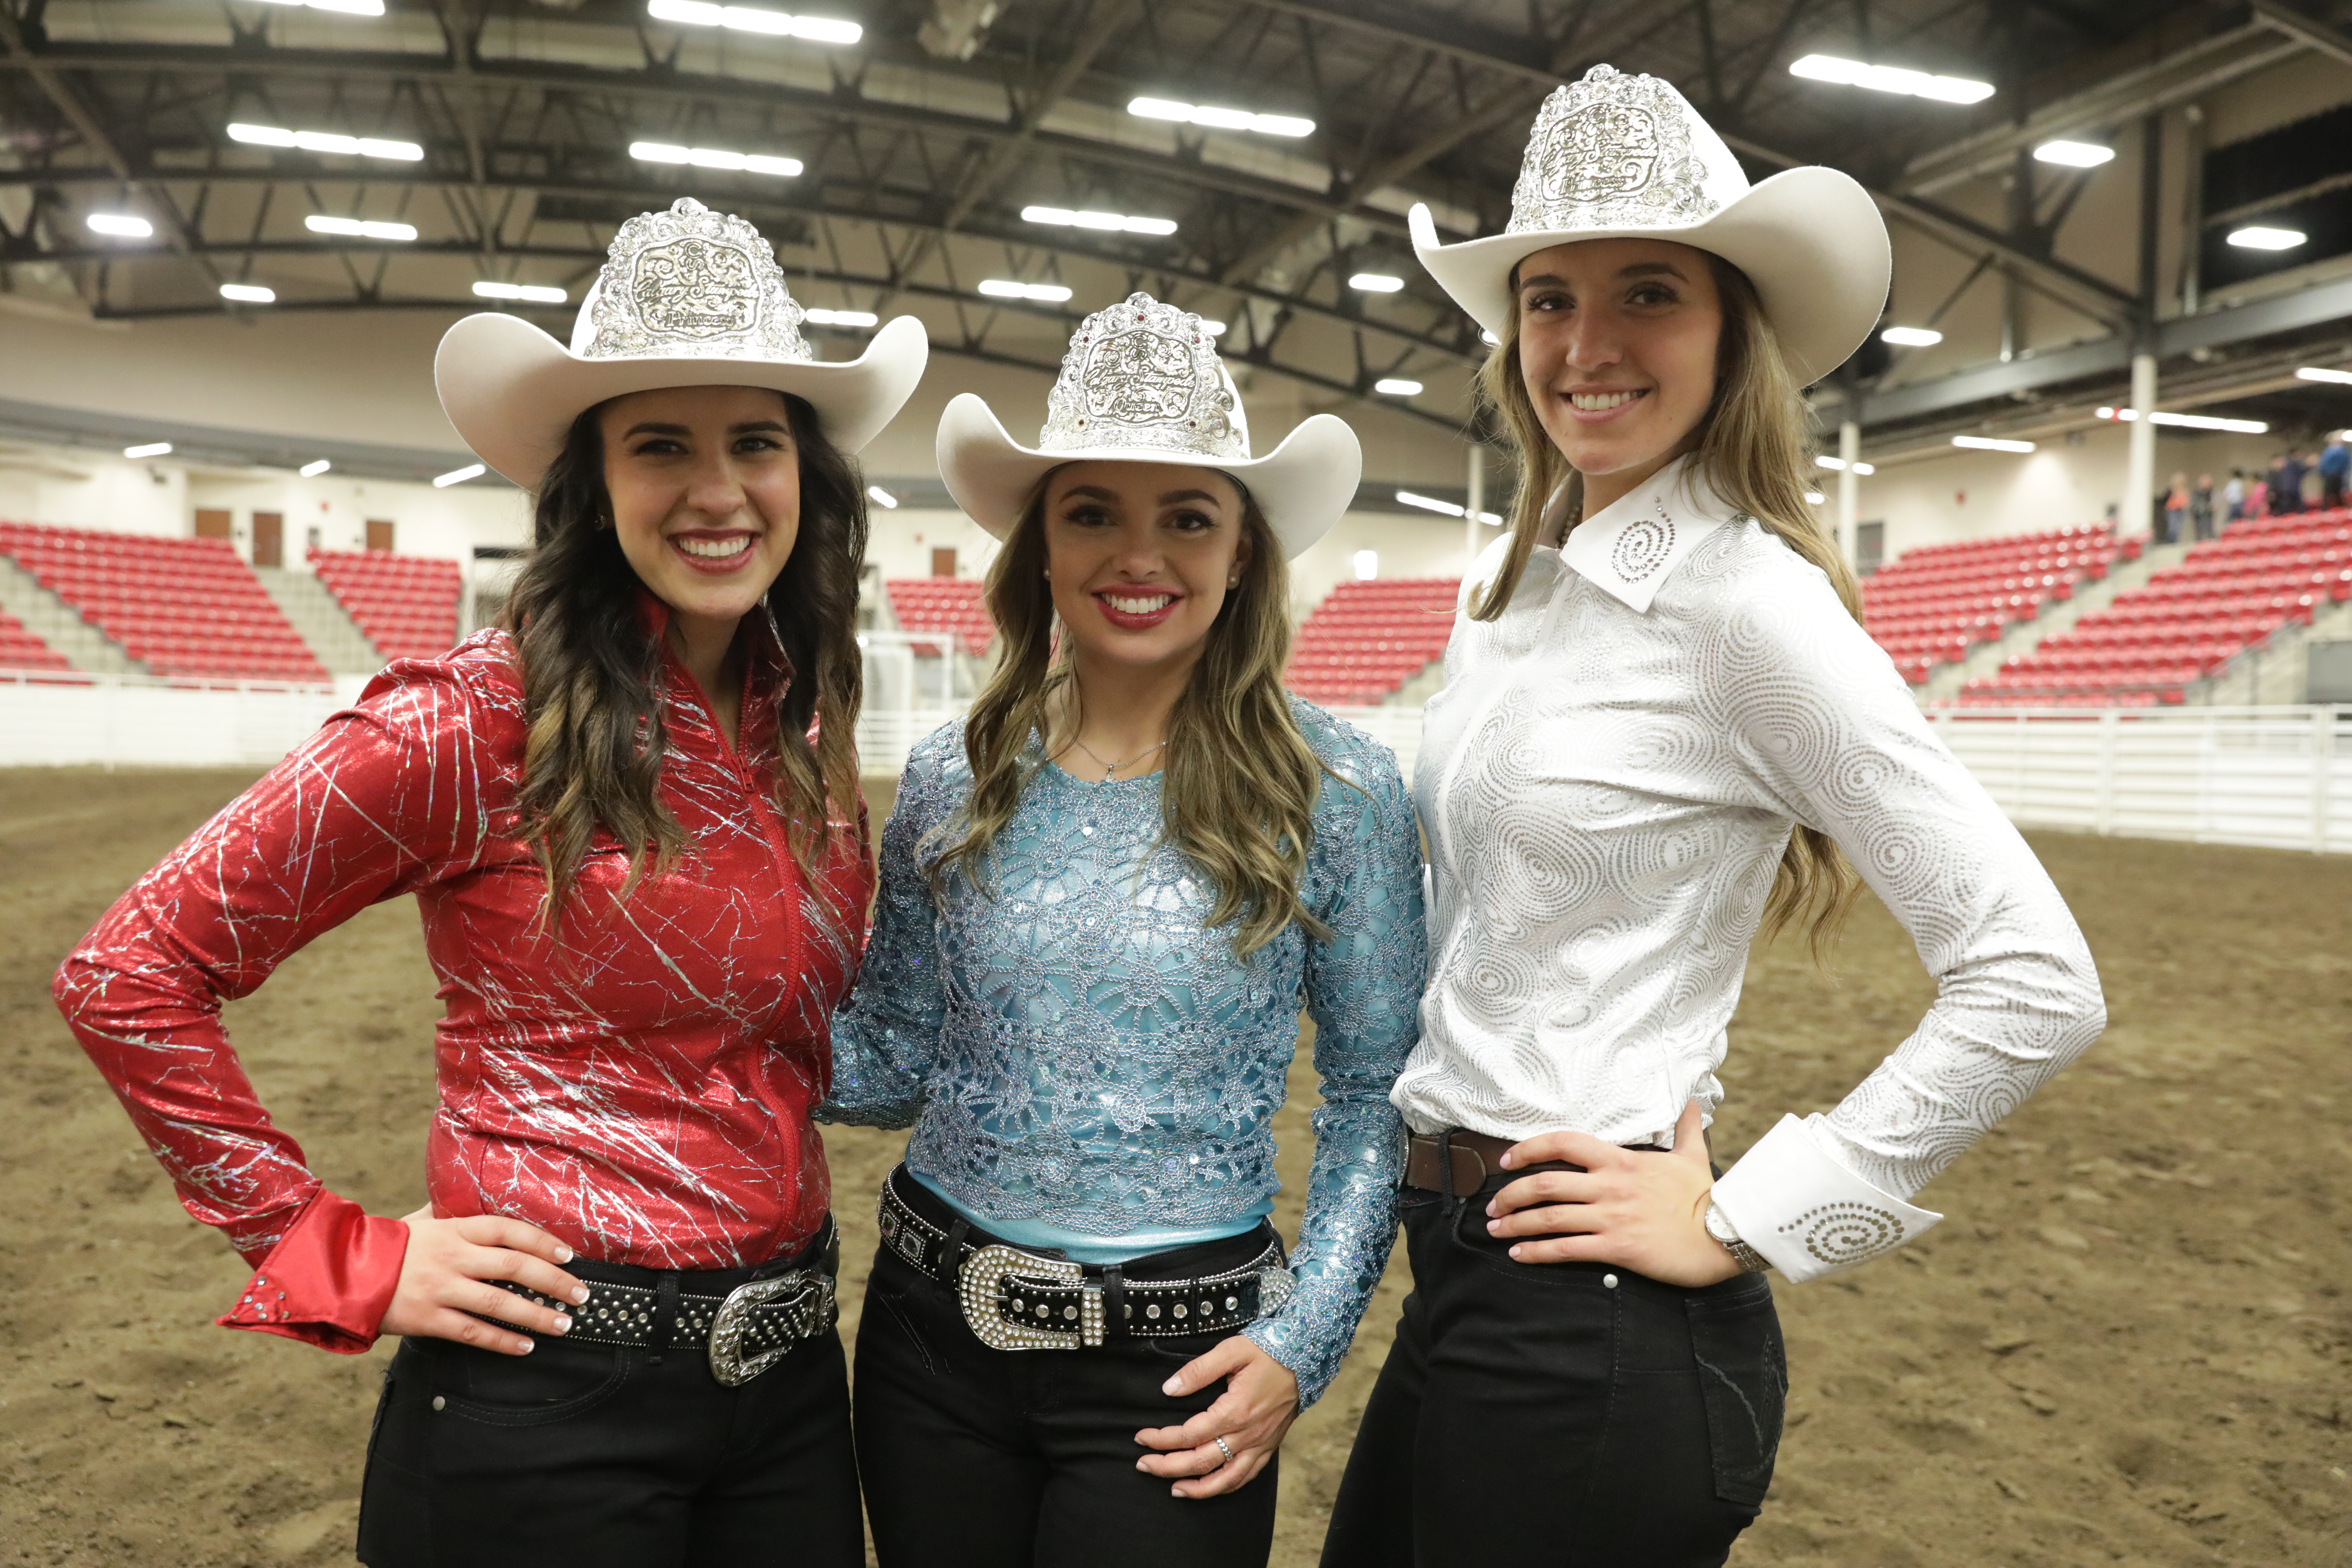 2018 Calgary Stampede Queen And Princesses Crowned